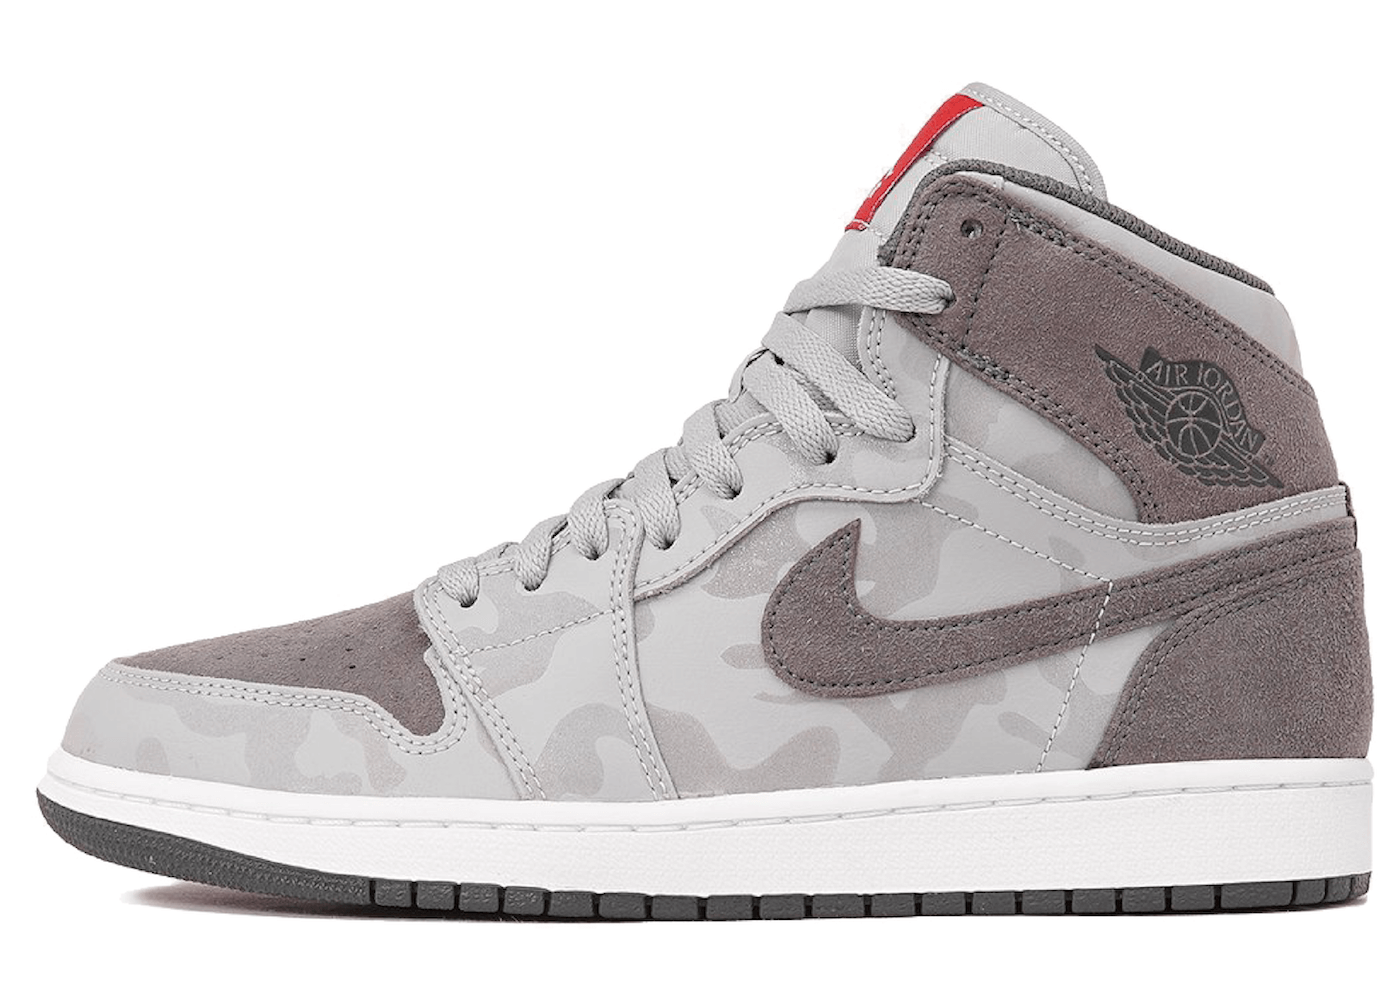 Jordan 1 Retro High Camo 3M Wolf Greyの写真